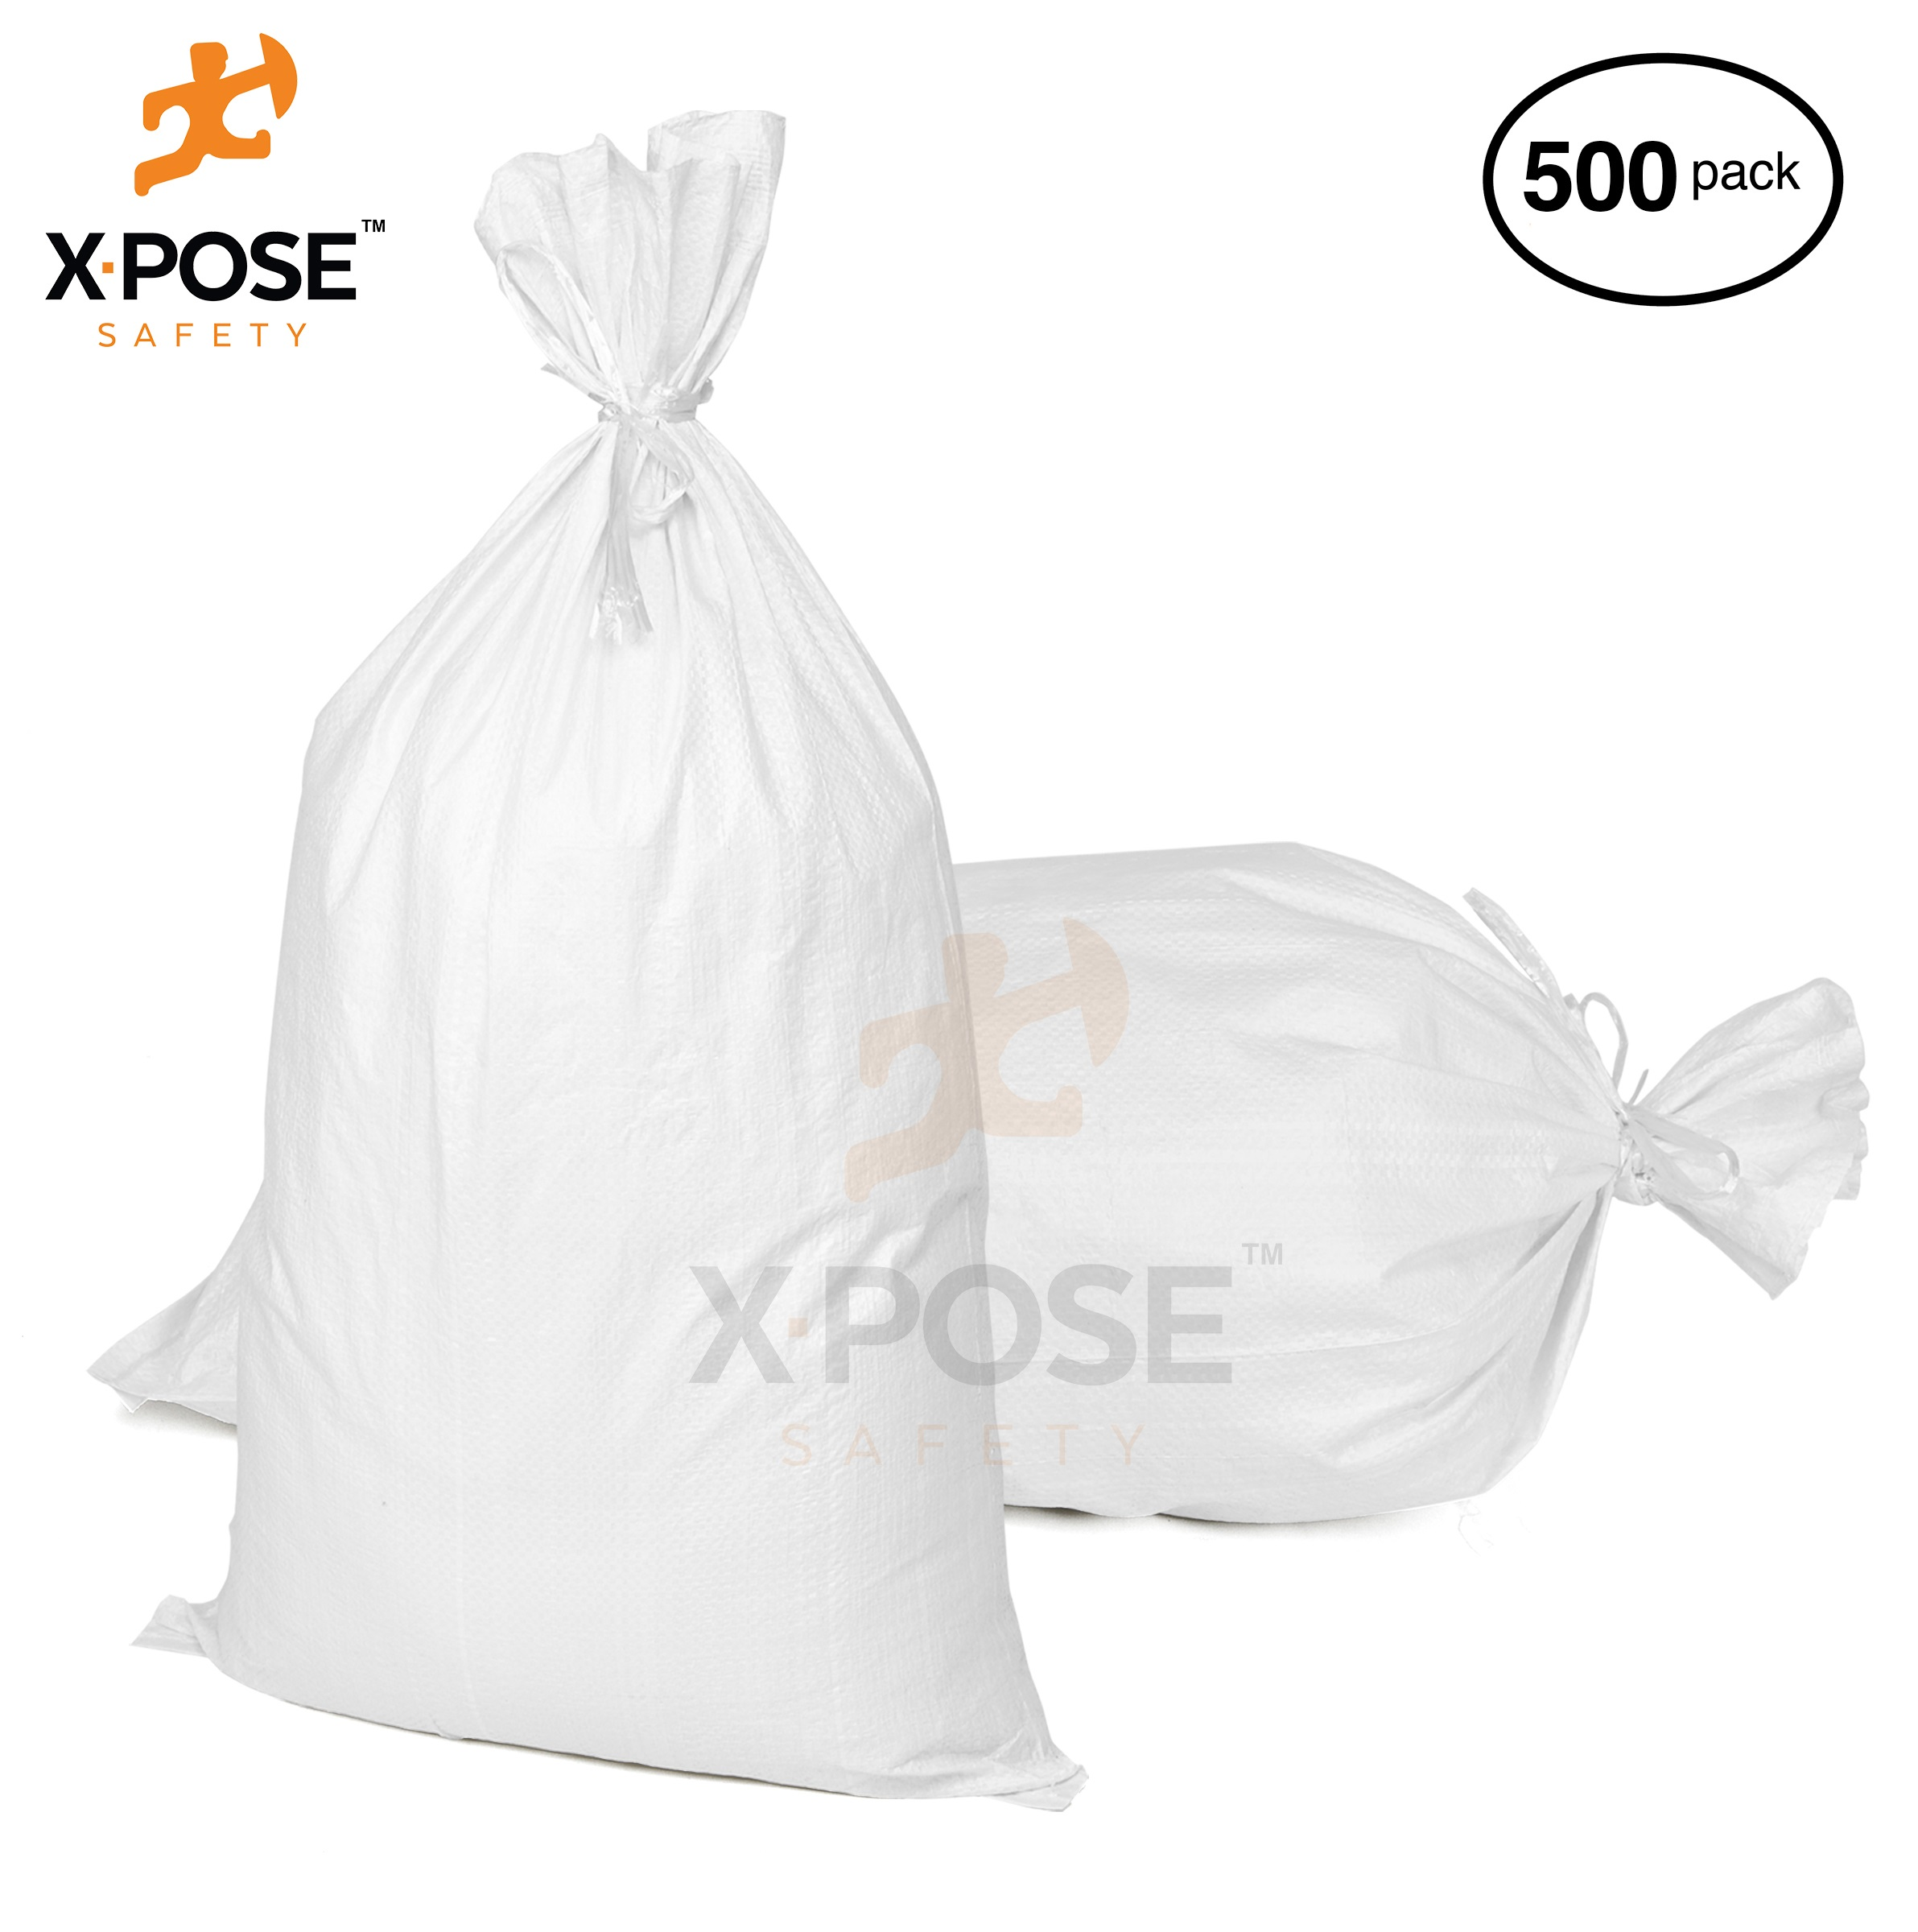 """15"""" x27""""  Empty Sand Bags, 500 Pack with Ties Heavy Duty Woven Polypropylene, UV Sun Protection, Dust, Water and Oil Resistant - Home and Industrial - Floods, Photography and More - by Xpose Safety WSB-1527-500"""